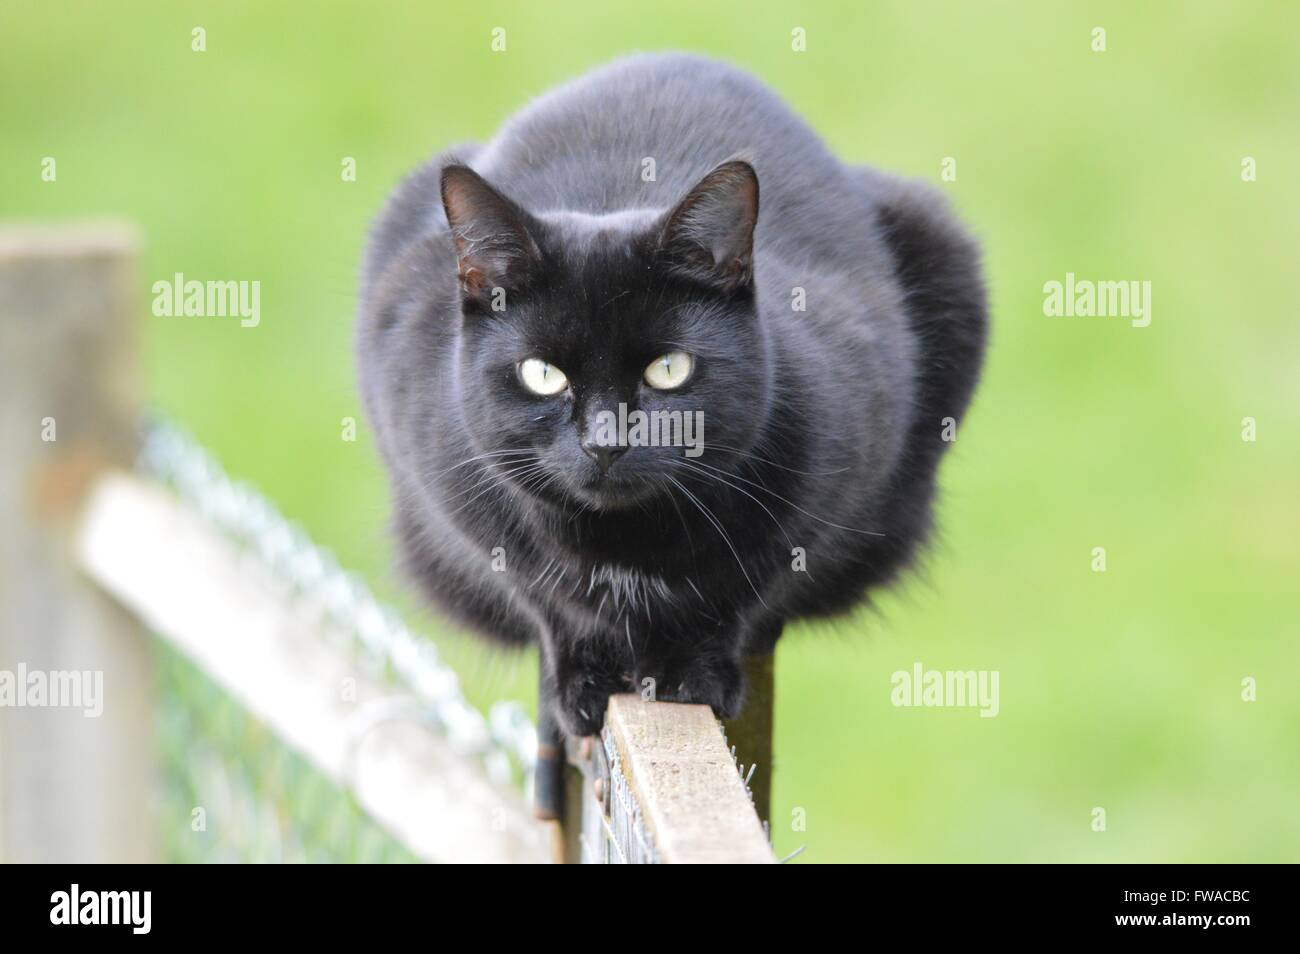 A black cat ready to pounce - Stock Image